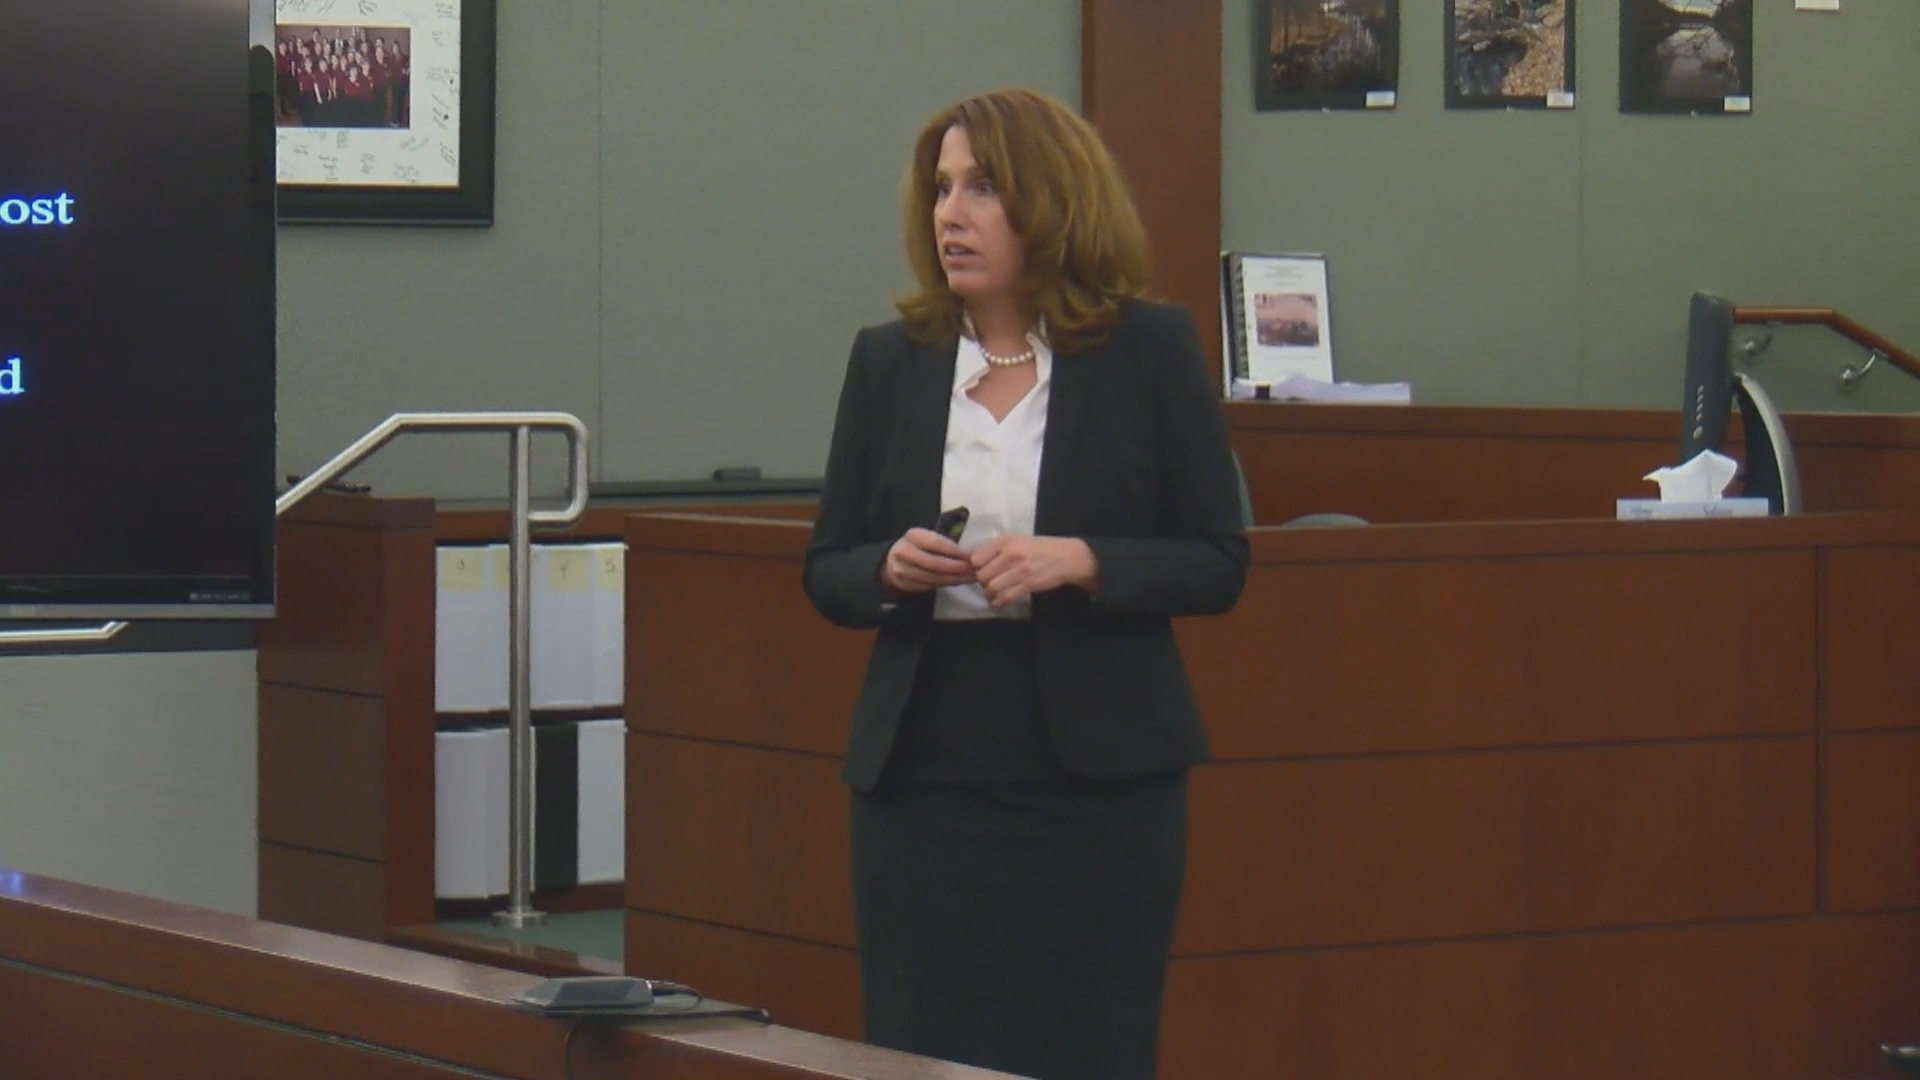 Clark County Chief Deputy District Attorney Pam Weckerly delivers her opening argument Tuesday, October 31, 2017, in the trial of Bryan Clay at the Regional Justice Center in Las Vegas. (Justin Michel/KSNV)